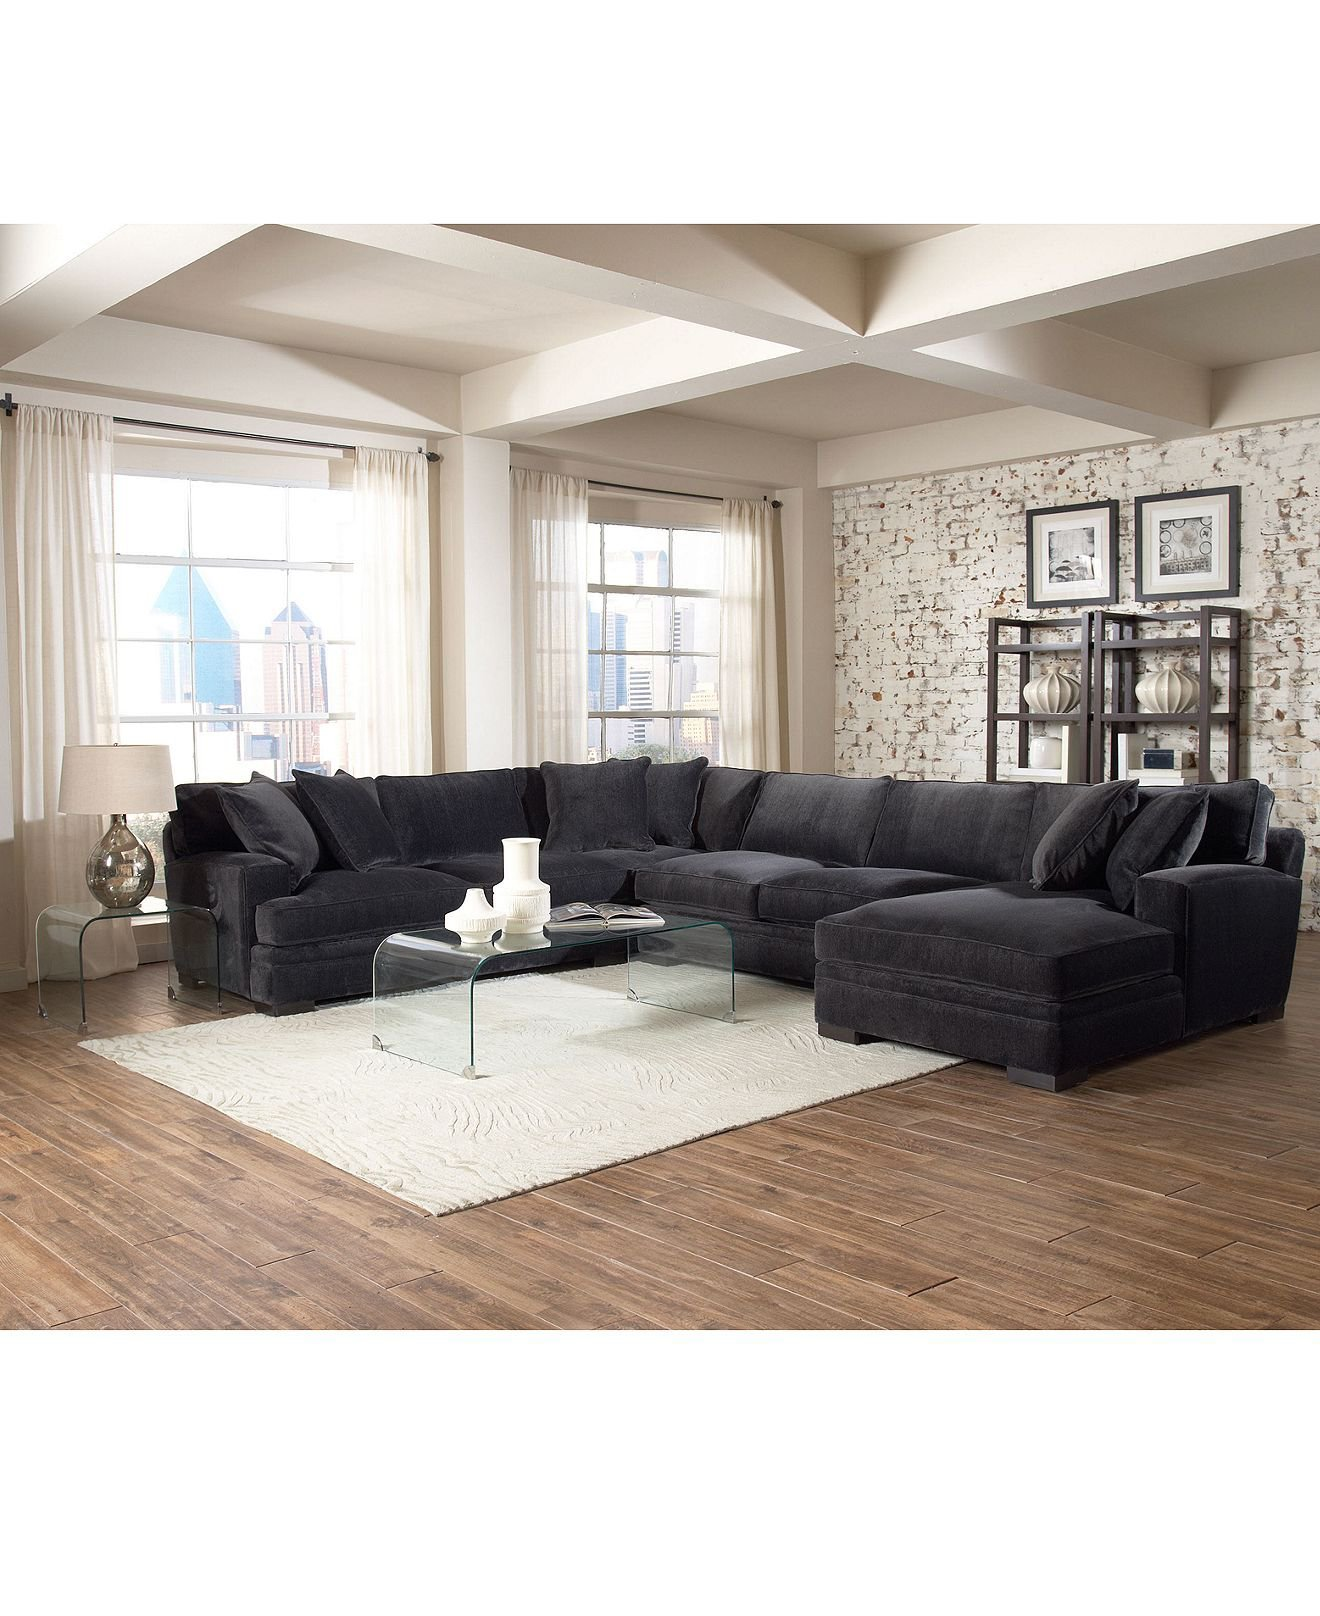 Macysfurniture Com: Teddy Fabric Sectional Living Room From Macys